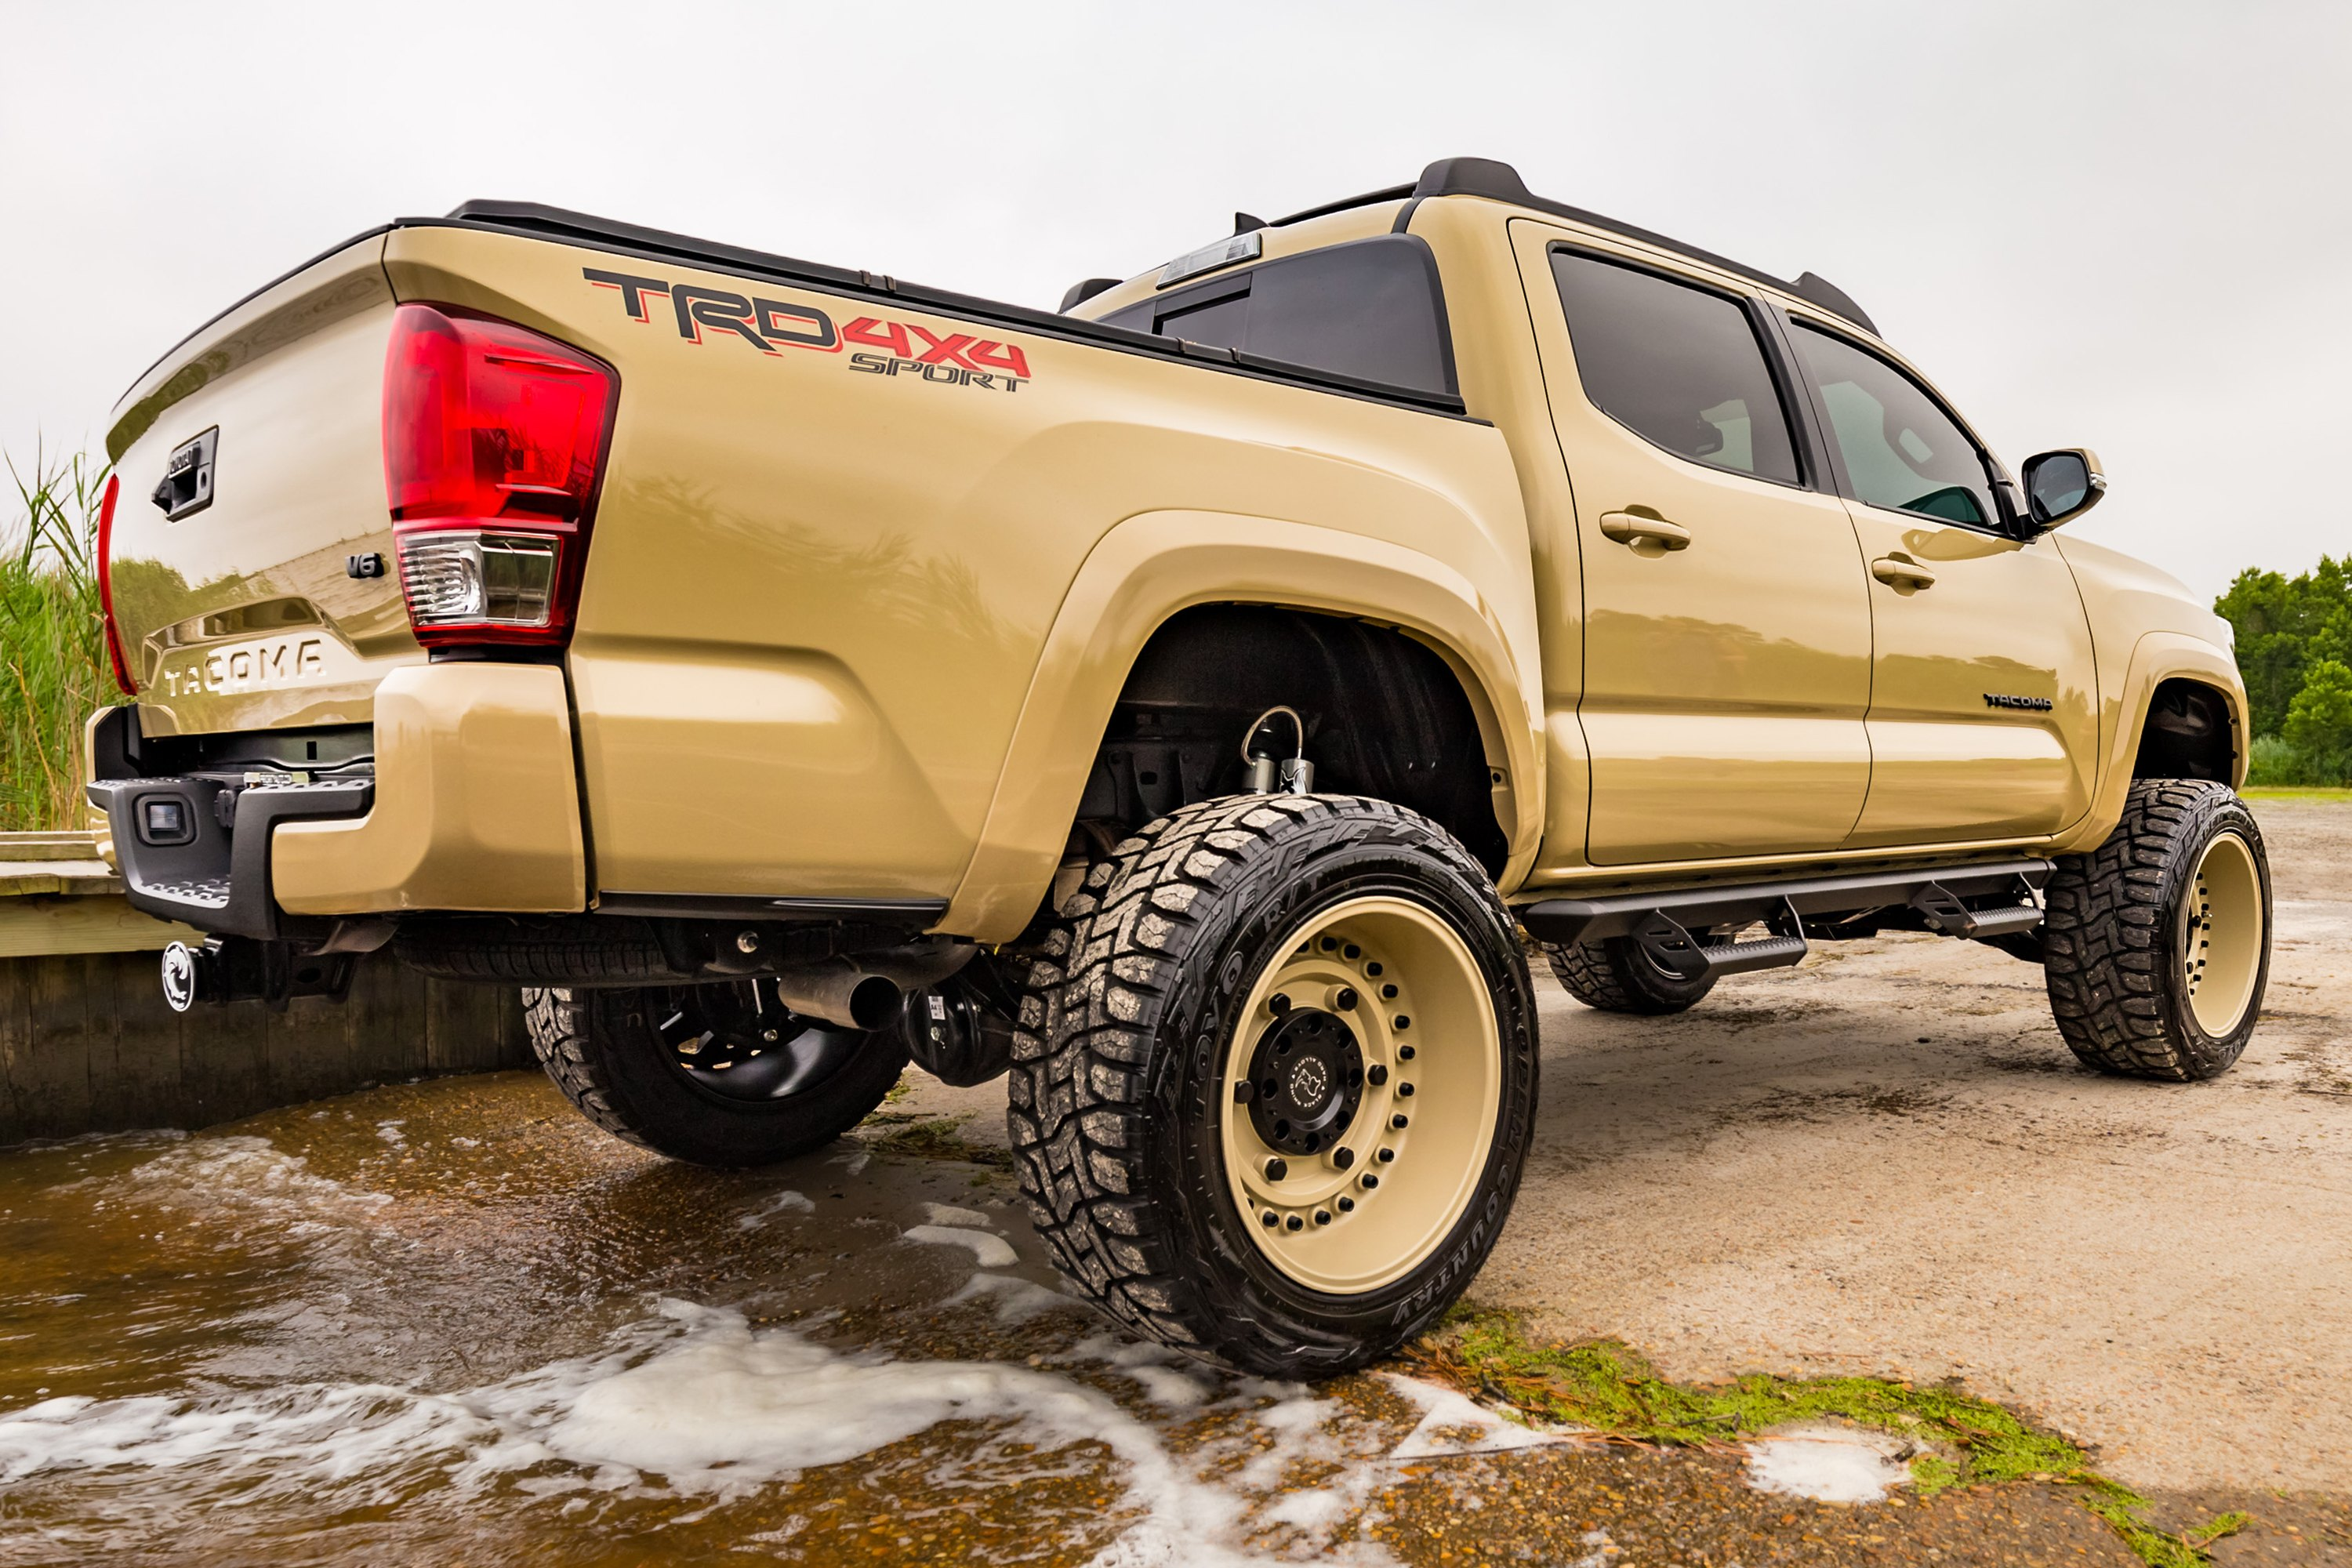 Armory Desert Sand 249482655 in addition 2001 Chevy S 10 Photo Shoot as well 2017 Ford Super Duty Series Fiberglass Fenders moreover Toyota Ta a in addition Coolest Red Trucks Ford And Chevy. on toyota tacoma custom paint